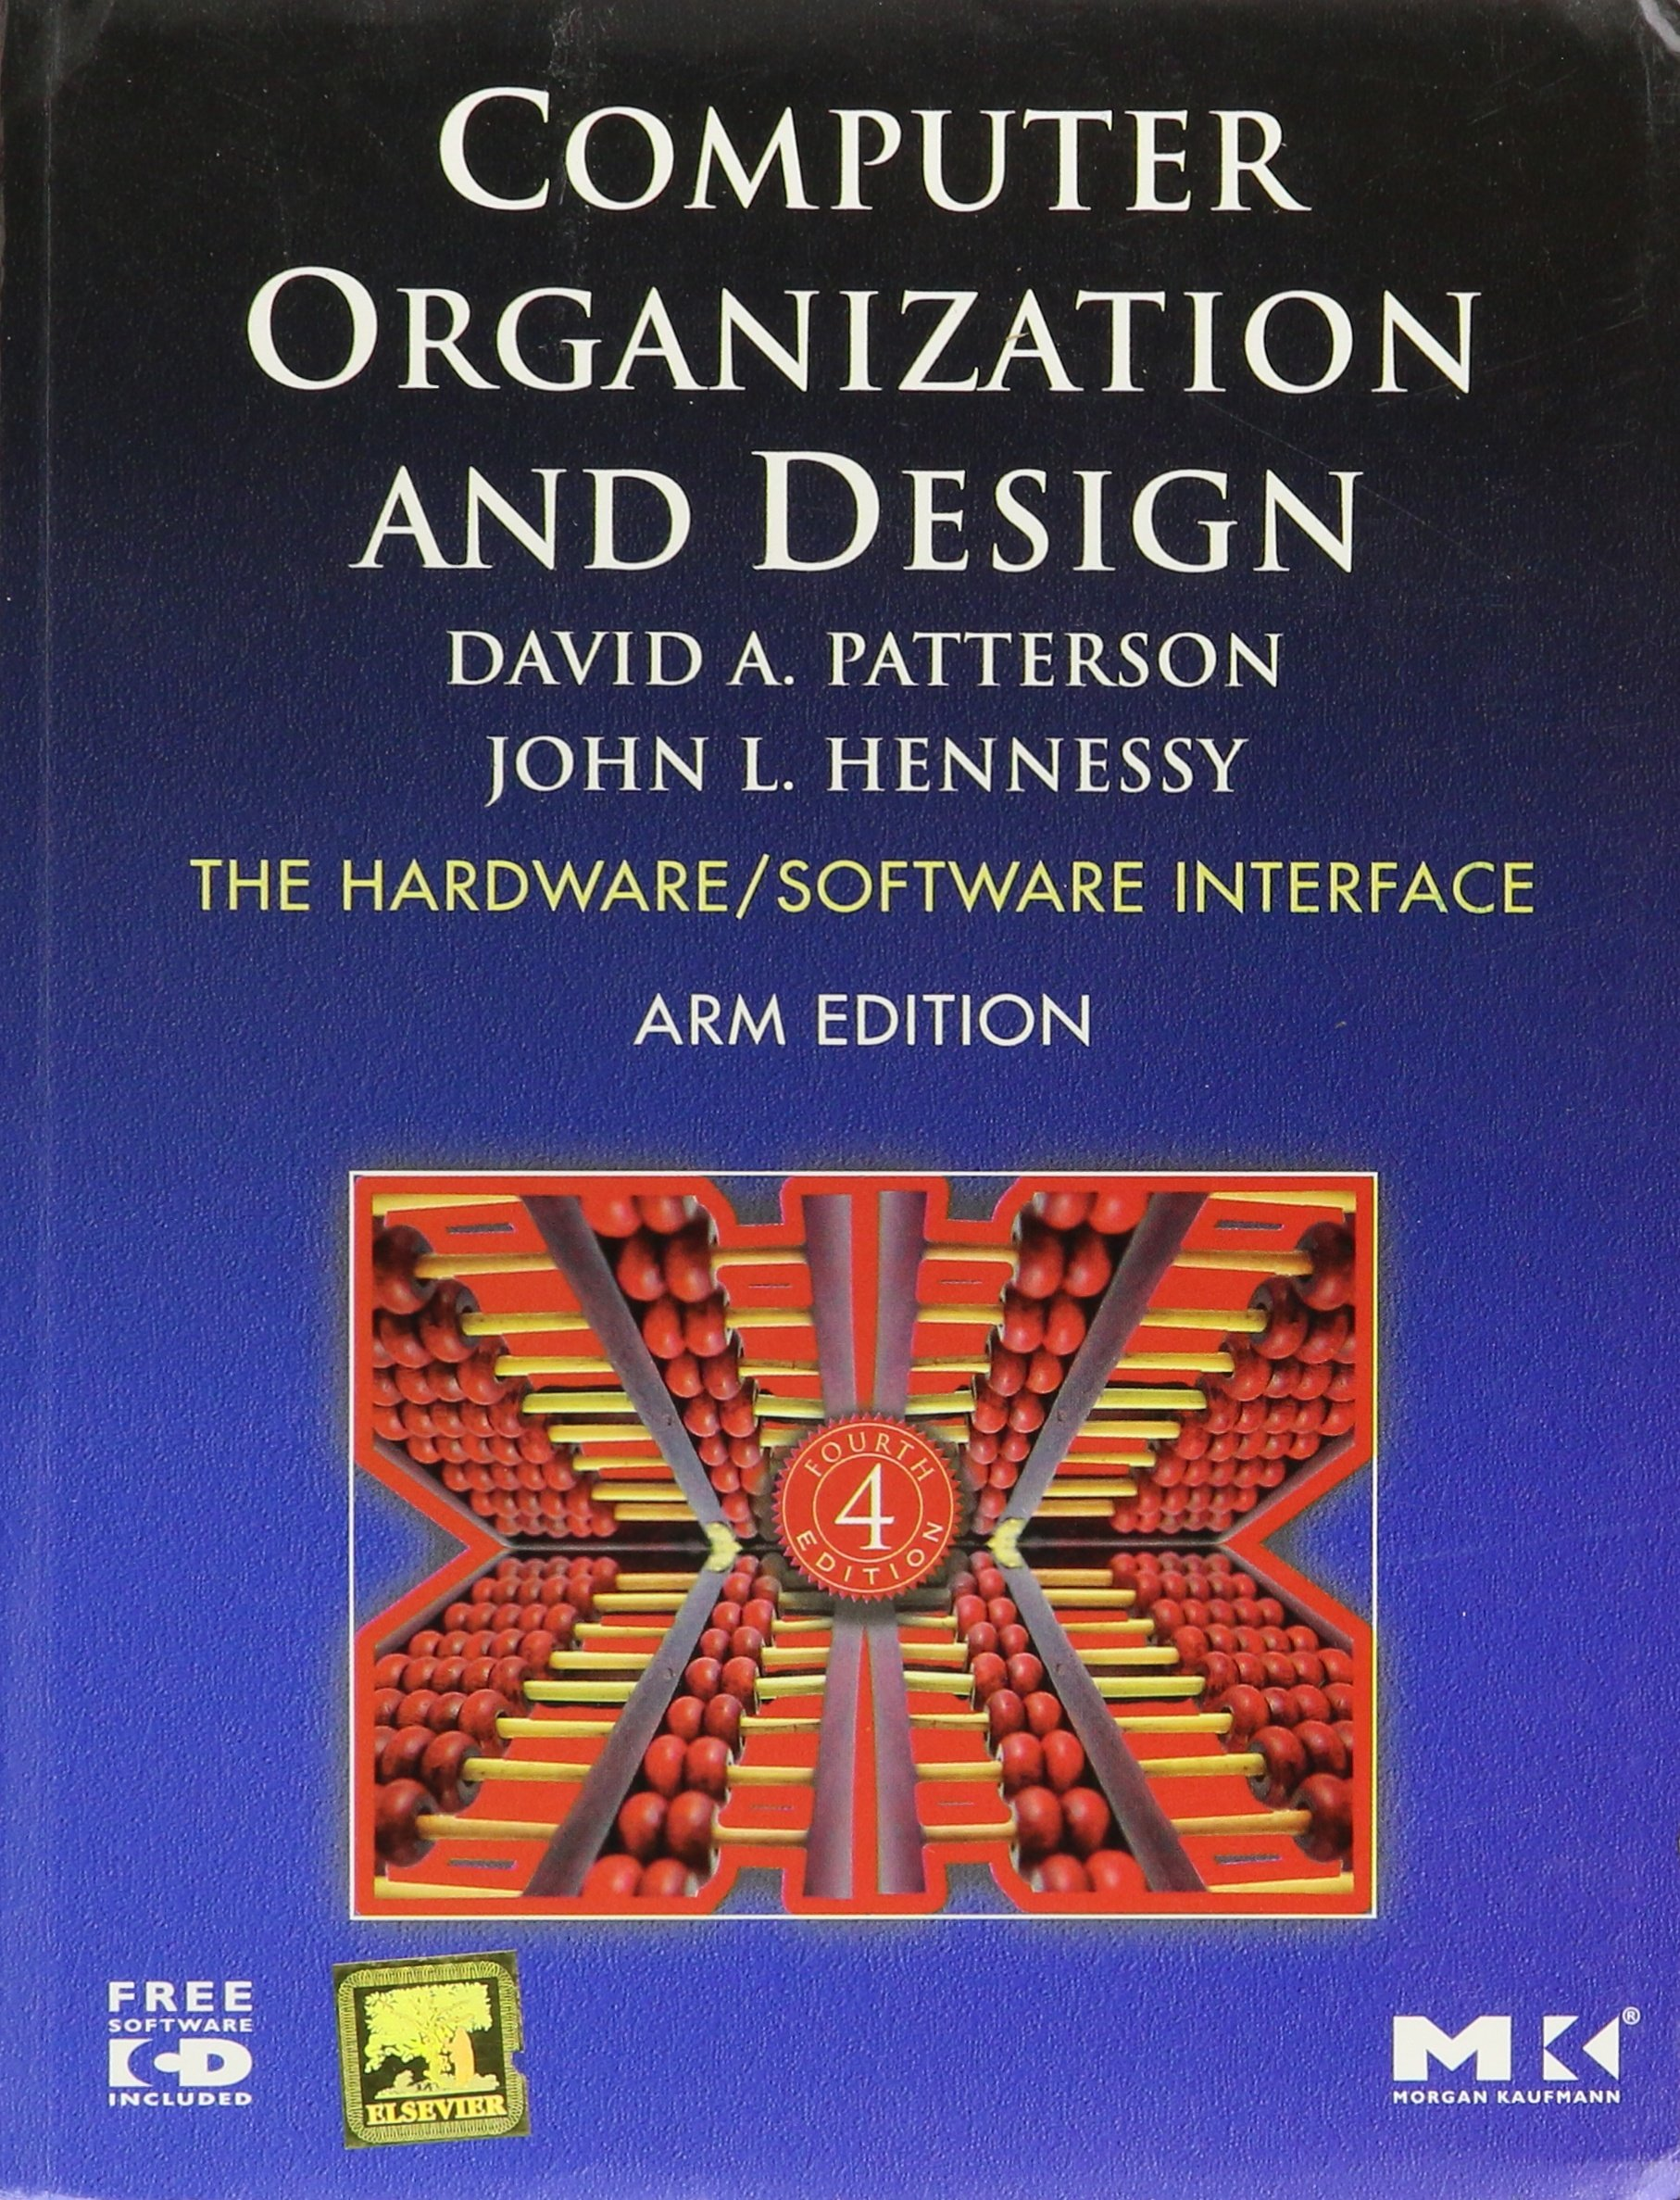 Computer Organization And Design The Hardware Software Interface Training Simulation For Residential Wiring 4th Edition David A Patterson John L Hennessy 9788131222744 Books